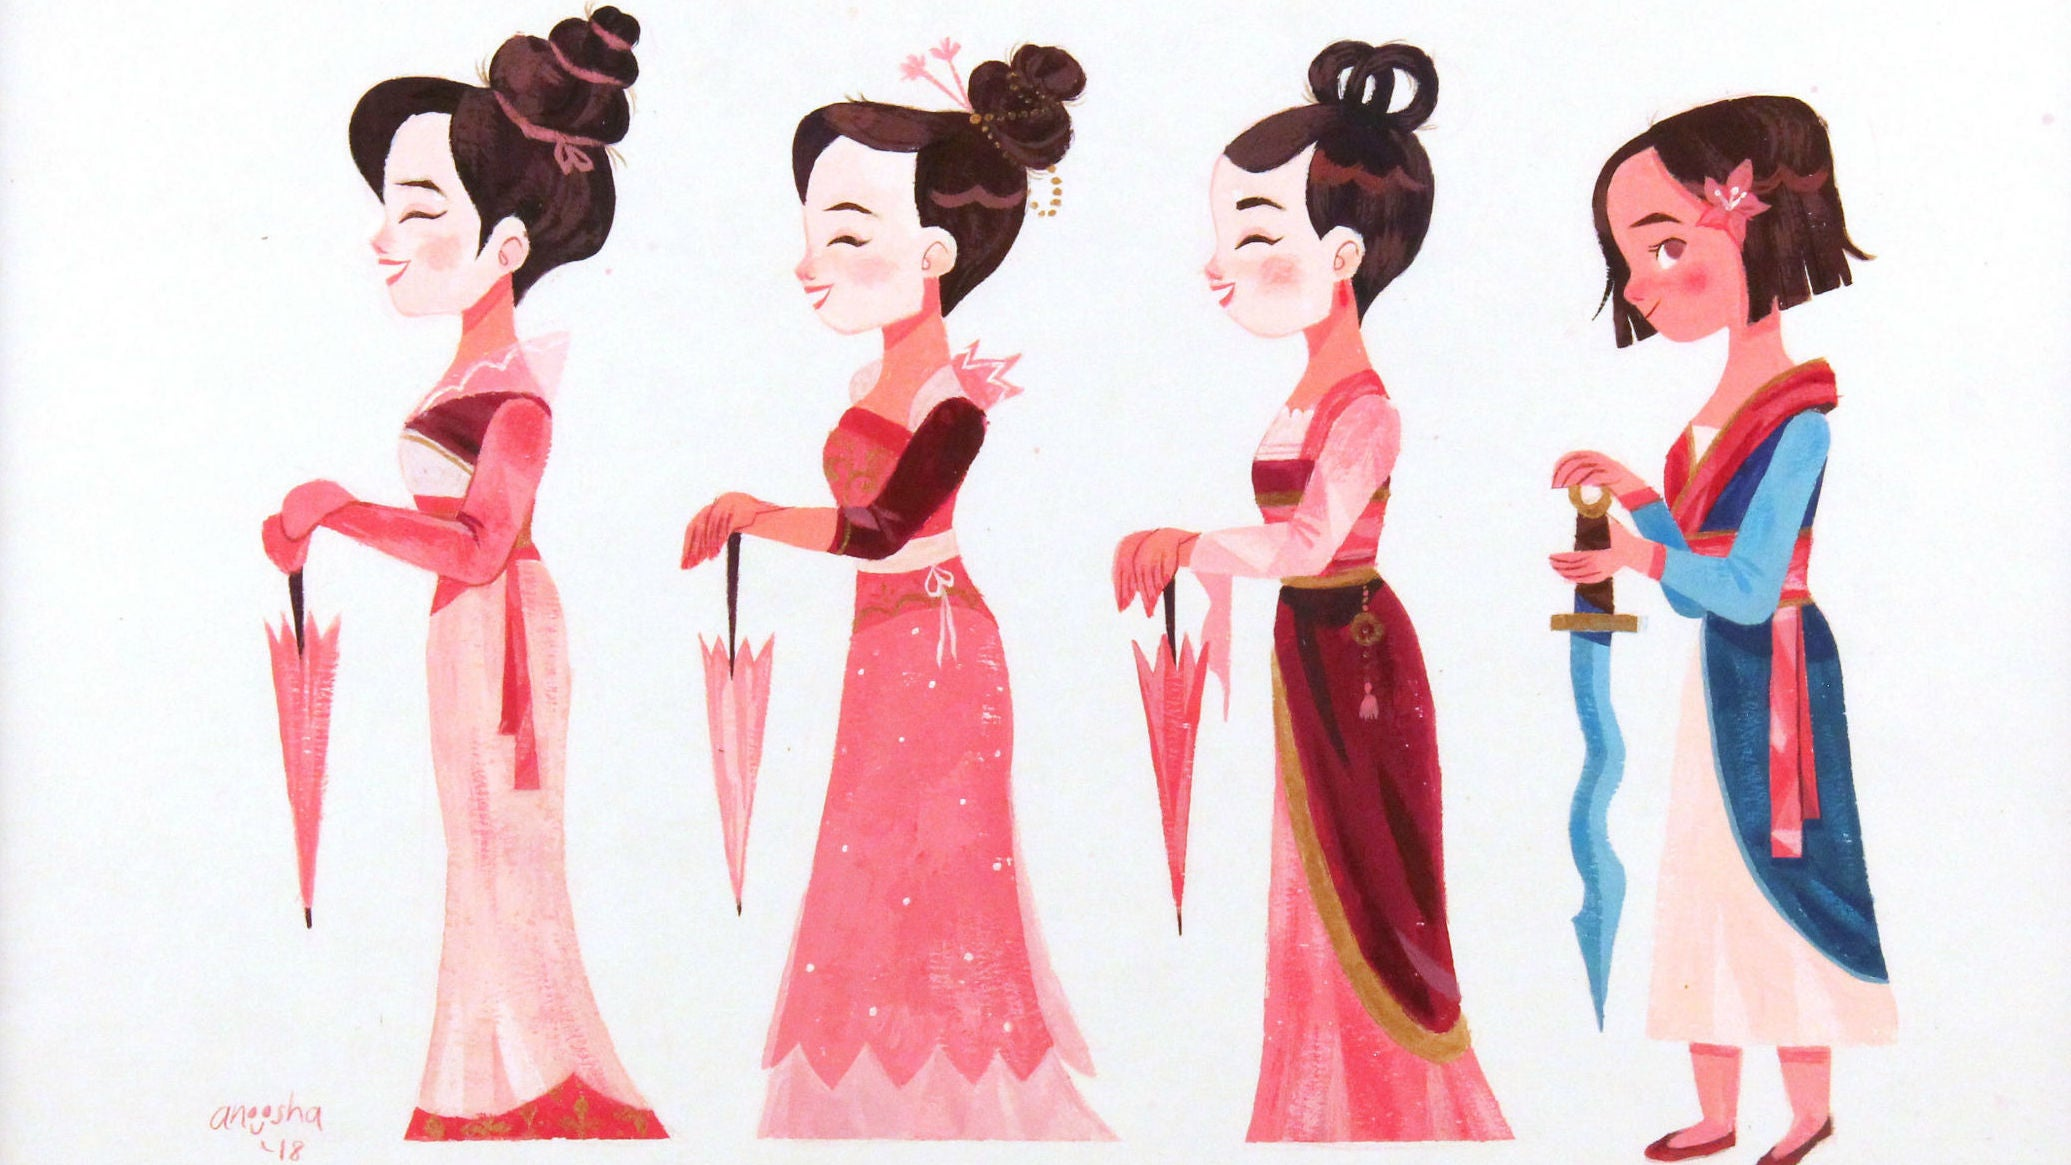 Celebrate The 20th Anniversary Of Mulan With This Beautiful Art Show